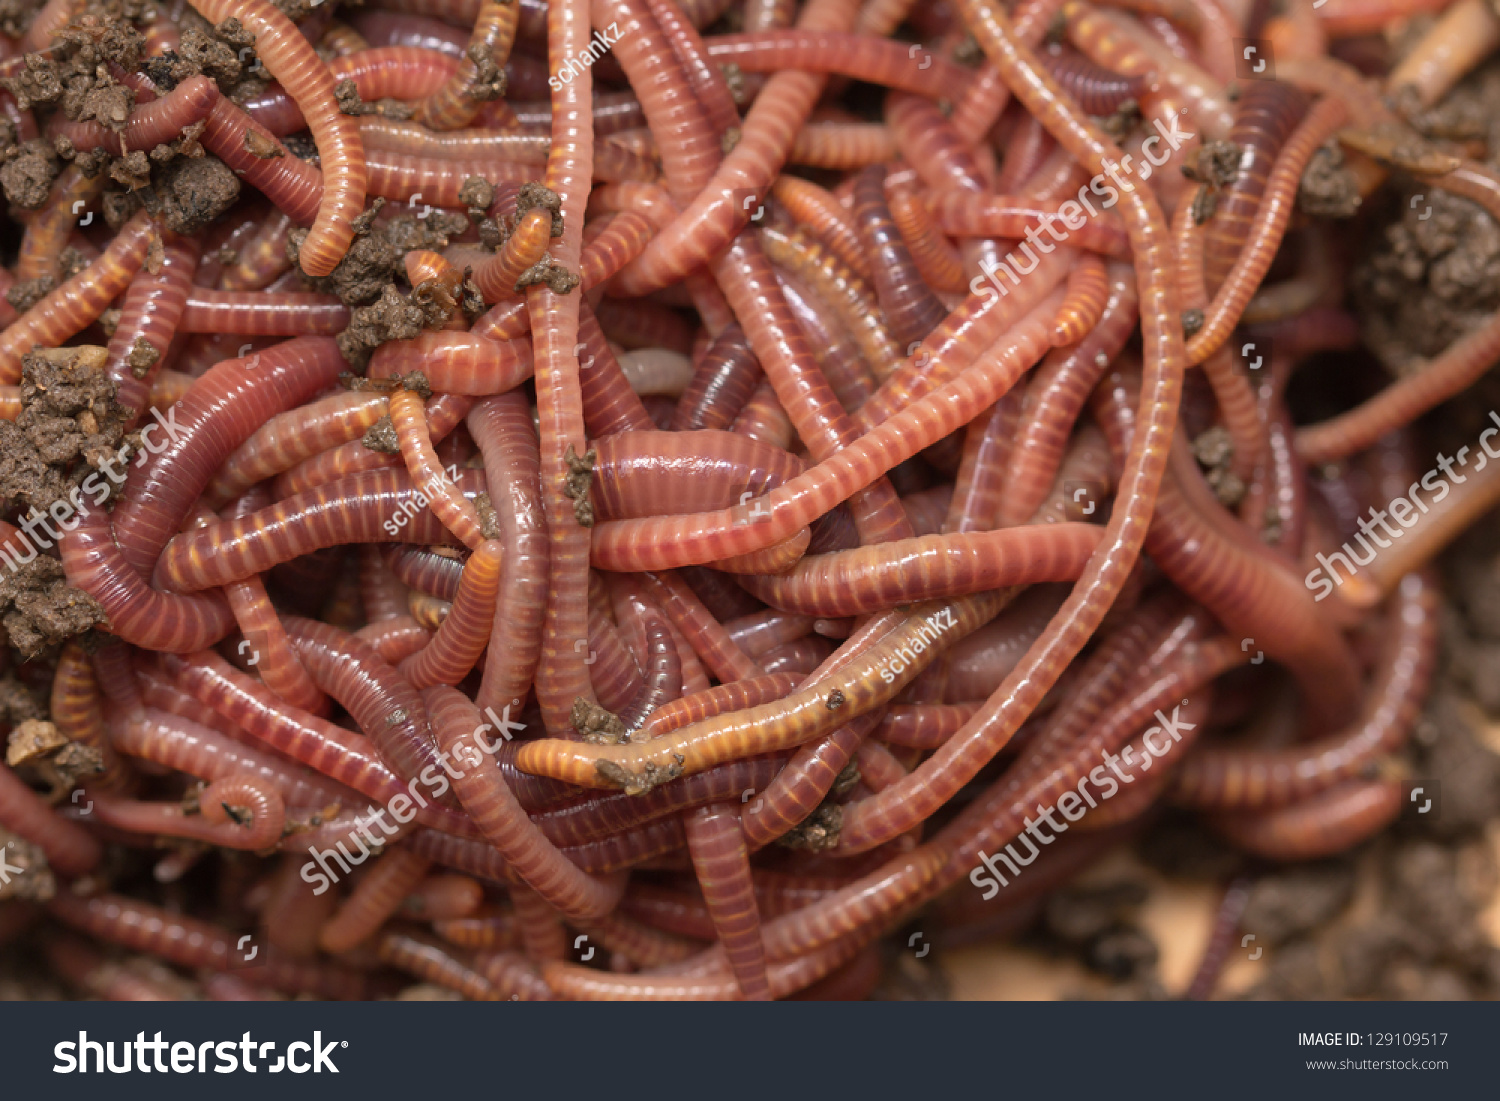 red worms compost bait fishing stock photo 129109517